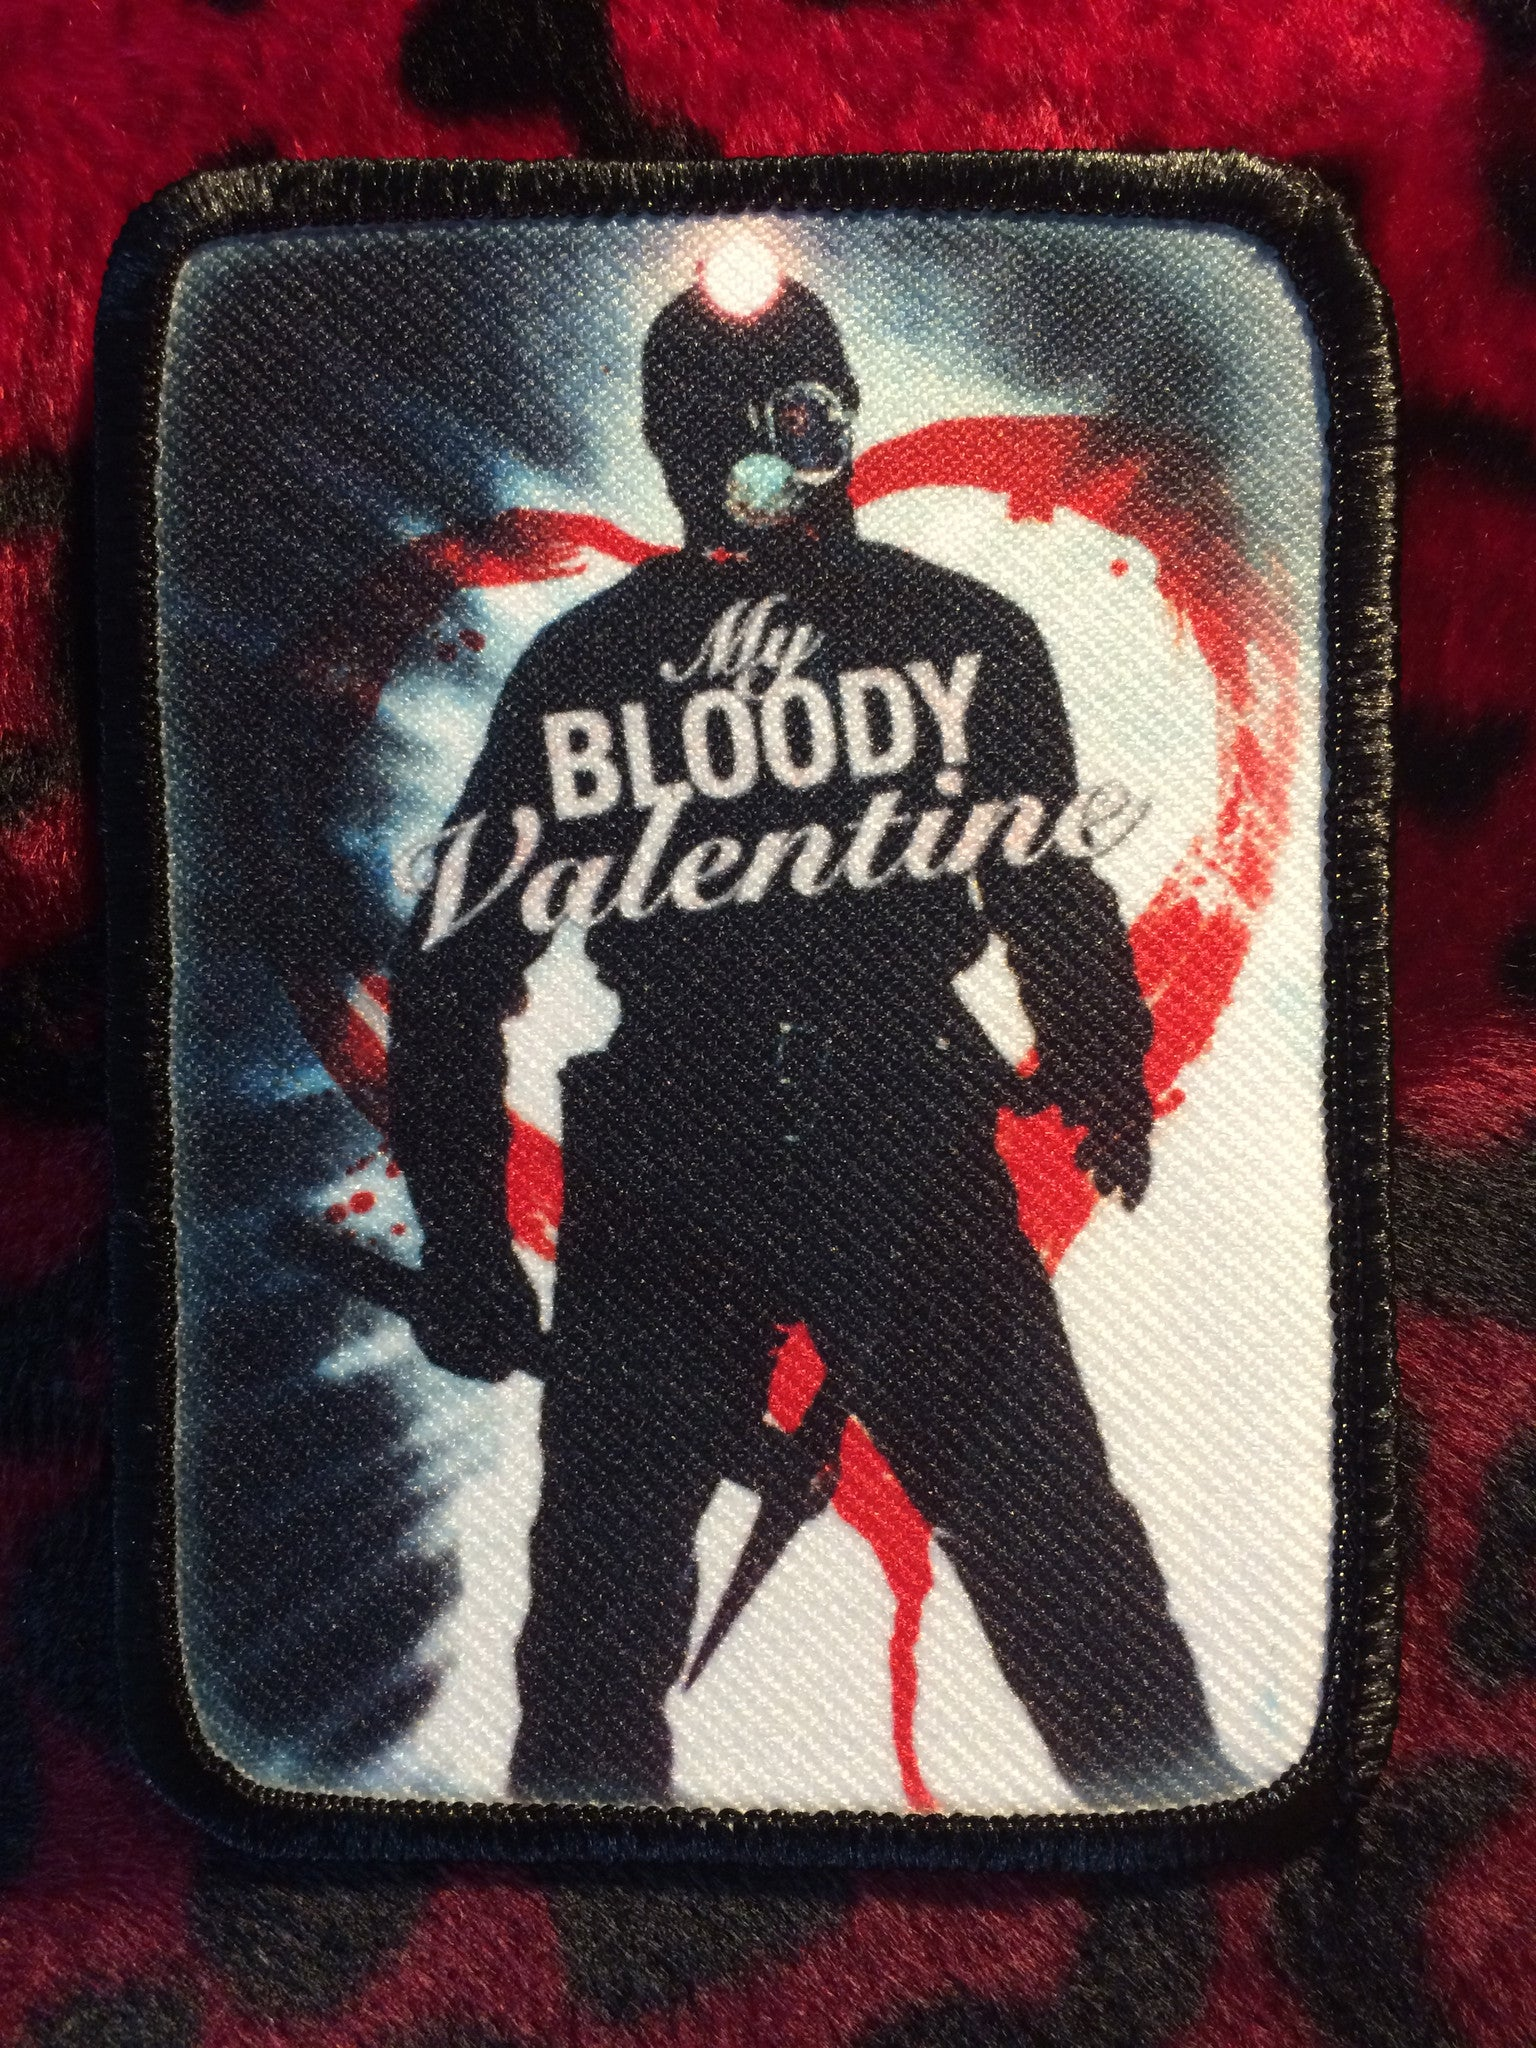 My Bloody Valentine Style B Patch